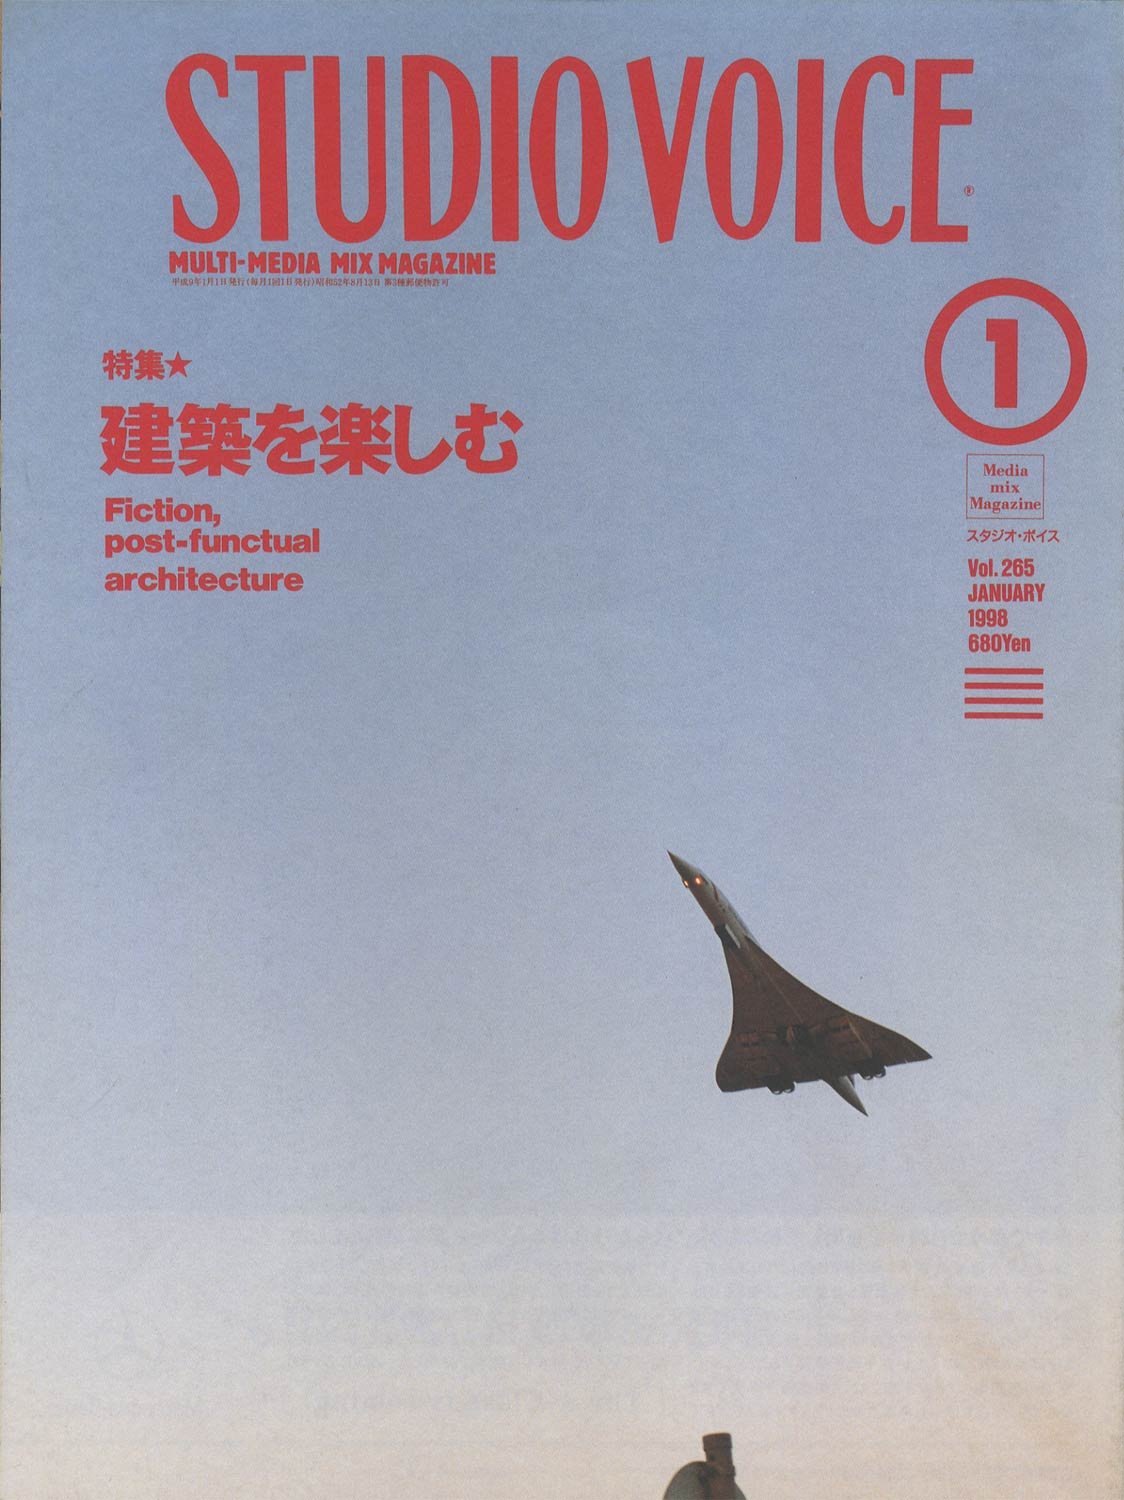 STUDIO VOICE MULTI-MEDIA MIX MAGAZINE/スタジオ・ボイス 1998年1月号 VOL.265